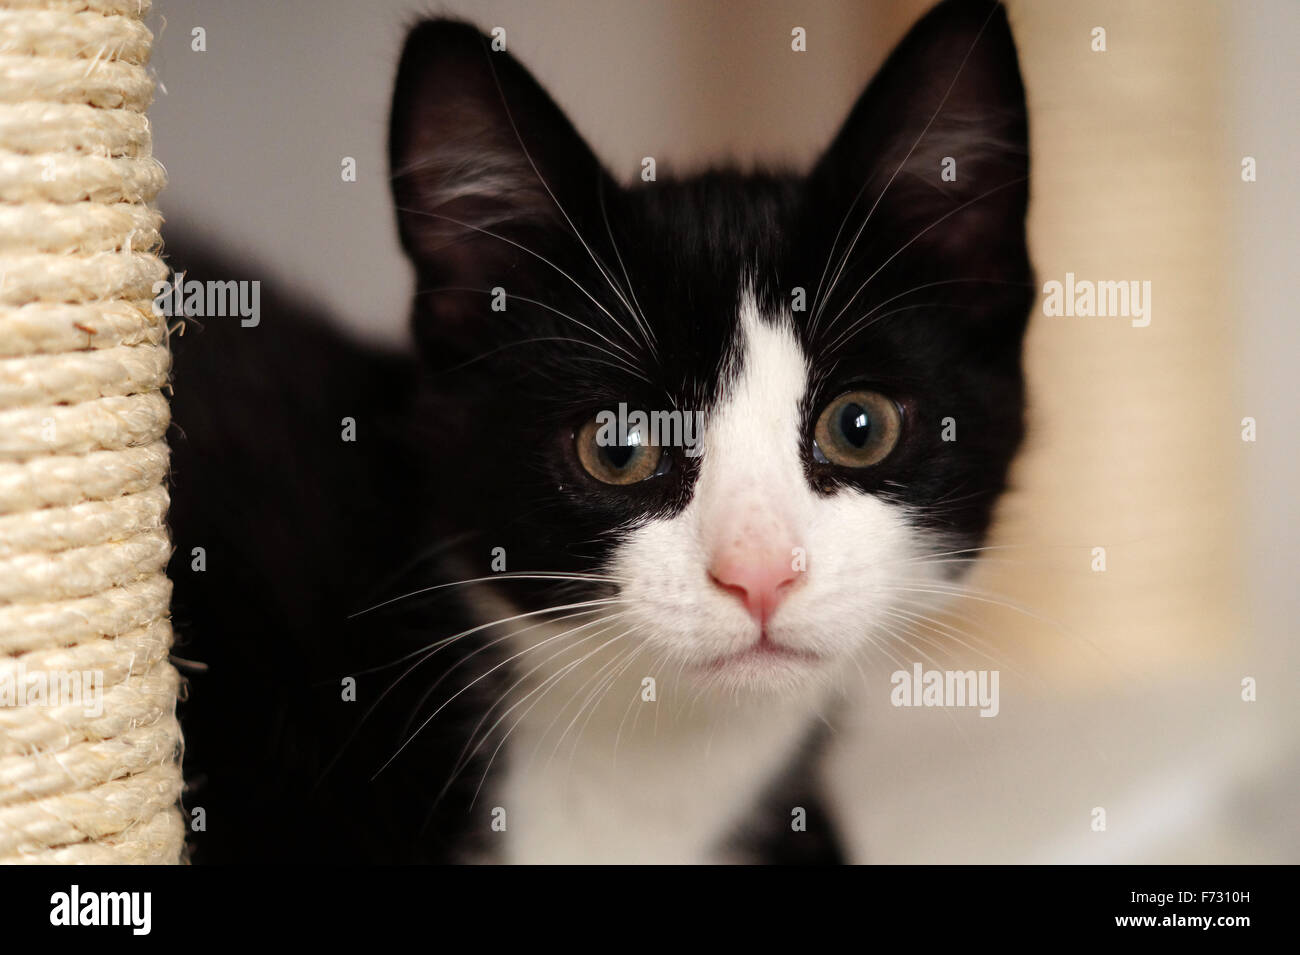 Black And White Cute Fluffy Kitten With Green Eyes Looking At Camera Stock Photo Alamy